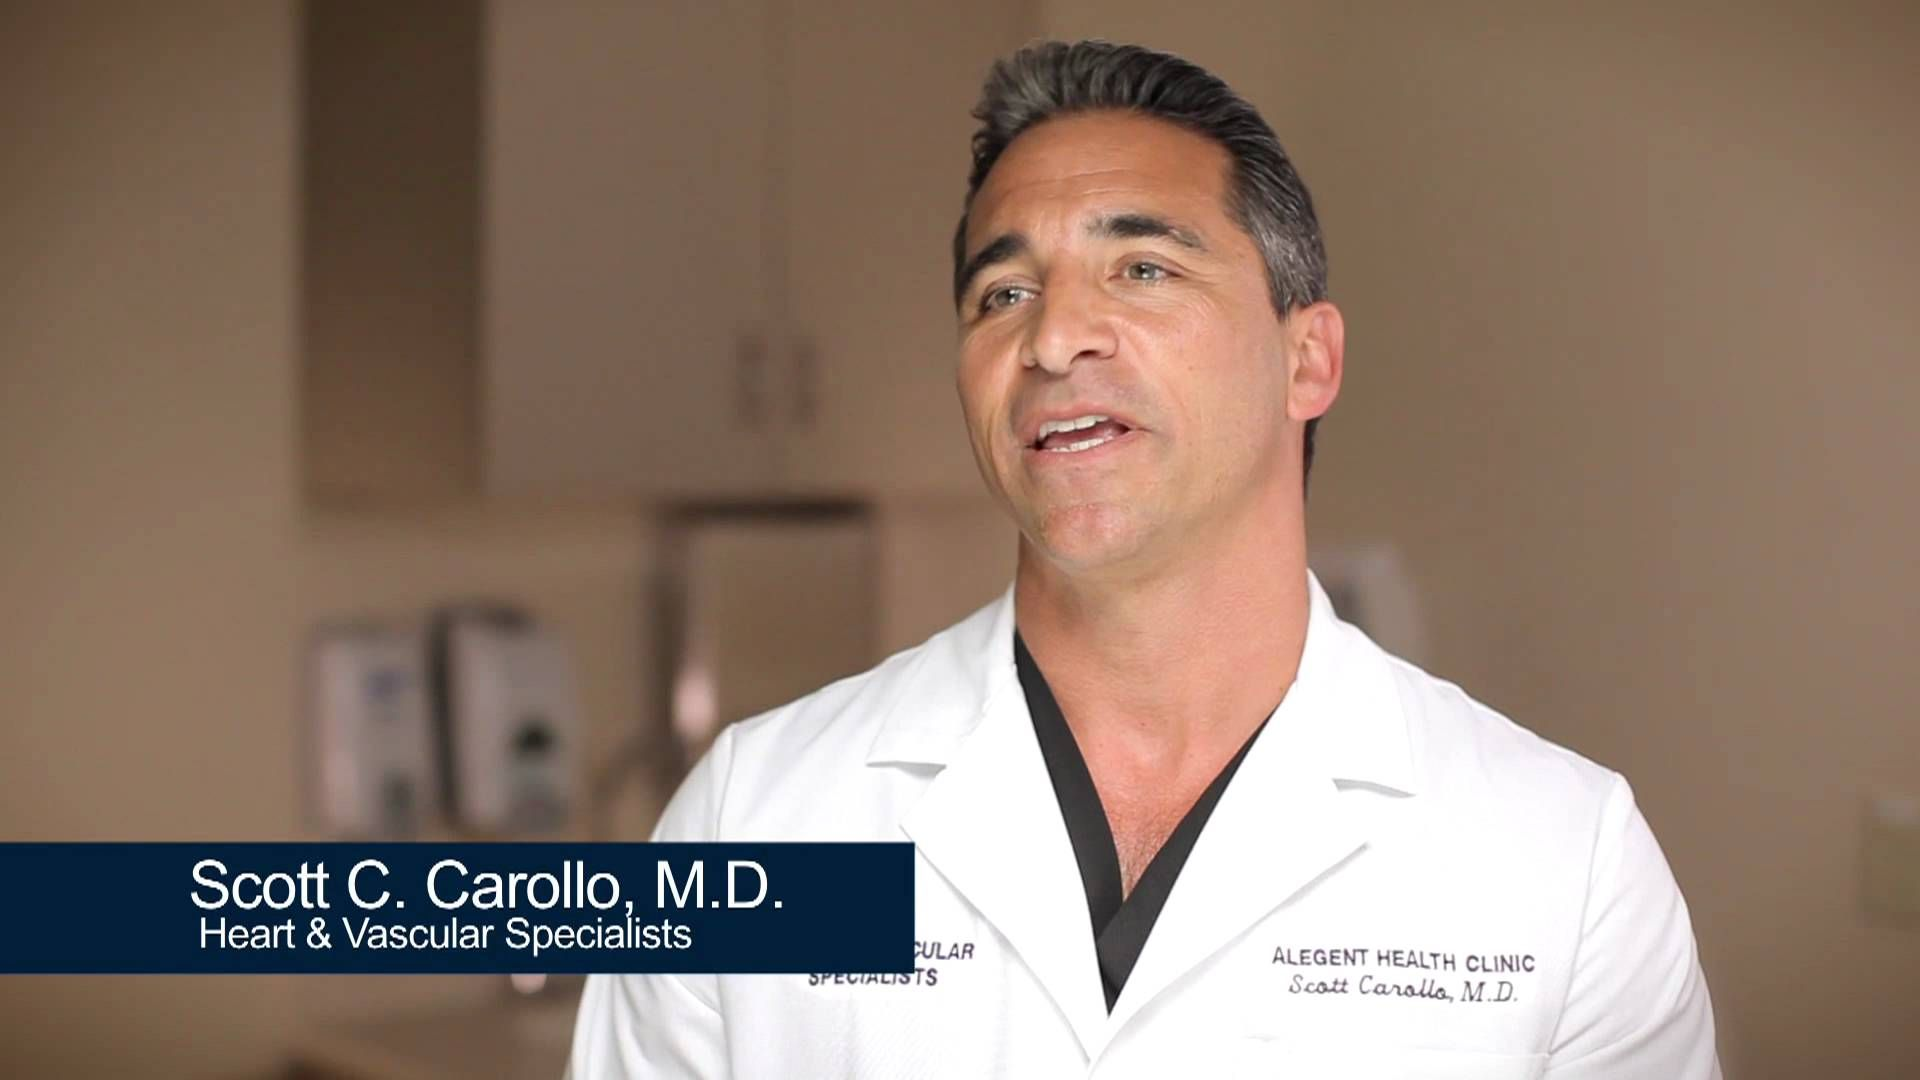 15+ Why did you become a Cardiologist